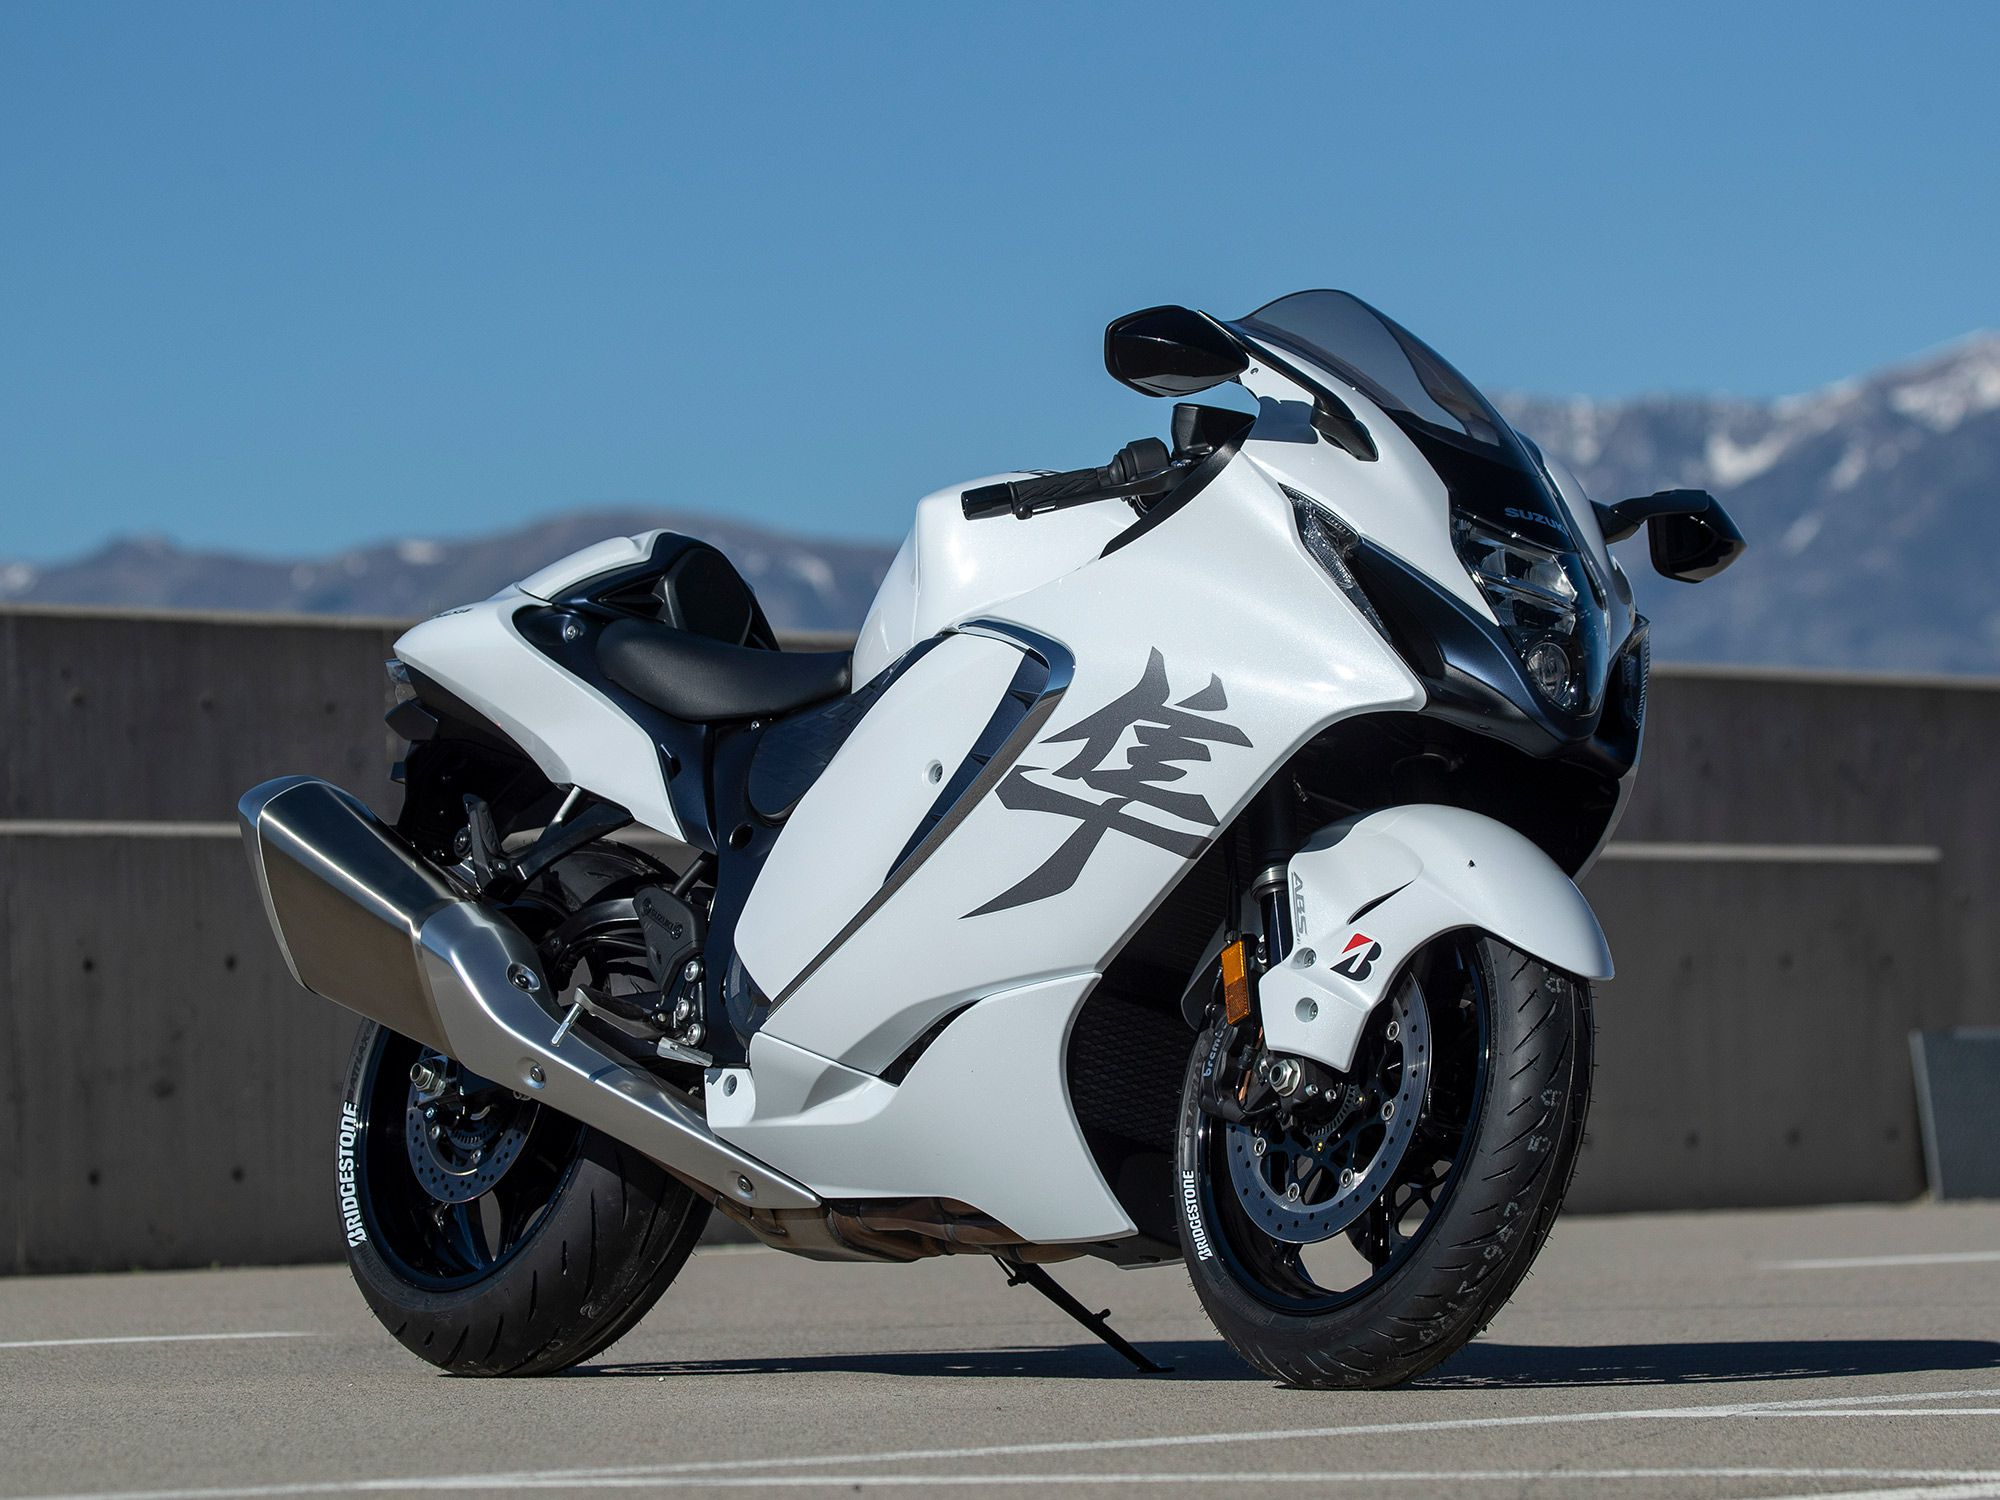 Suzuki's 2022 Hayabusa ($18,599) represents the top of the spear in its current motorcycle model line-up.